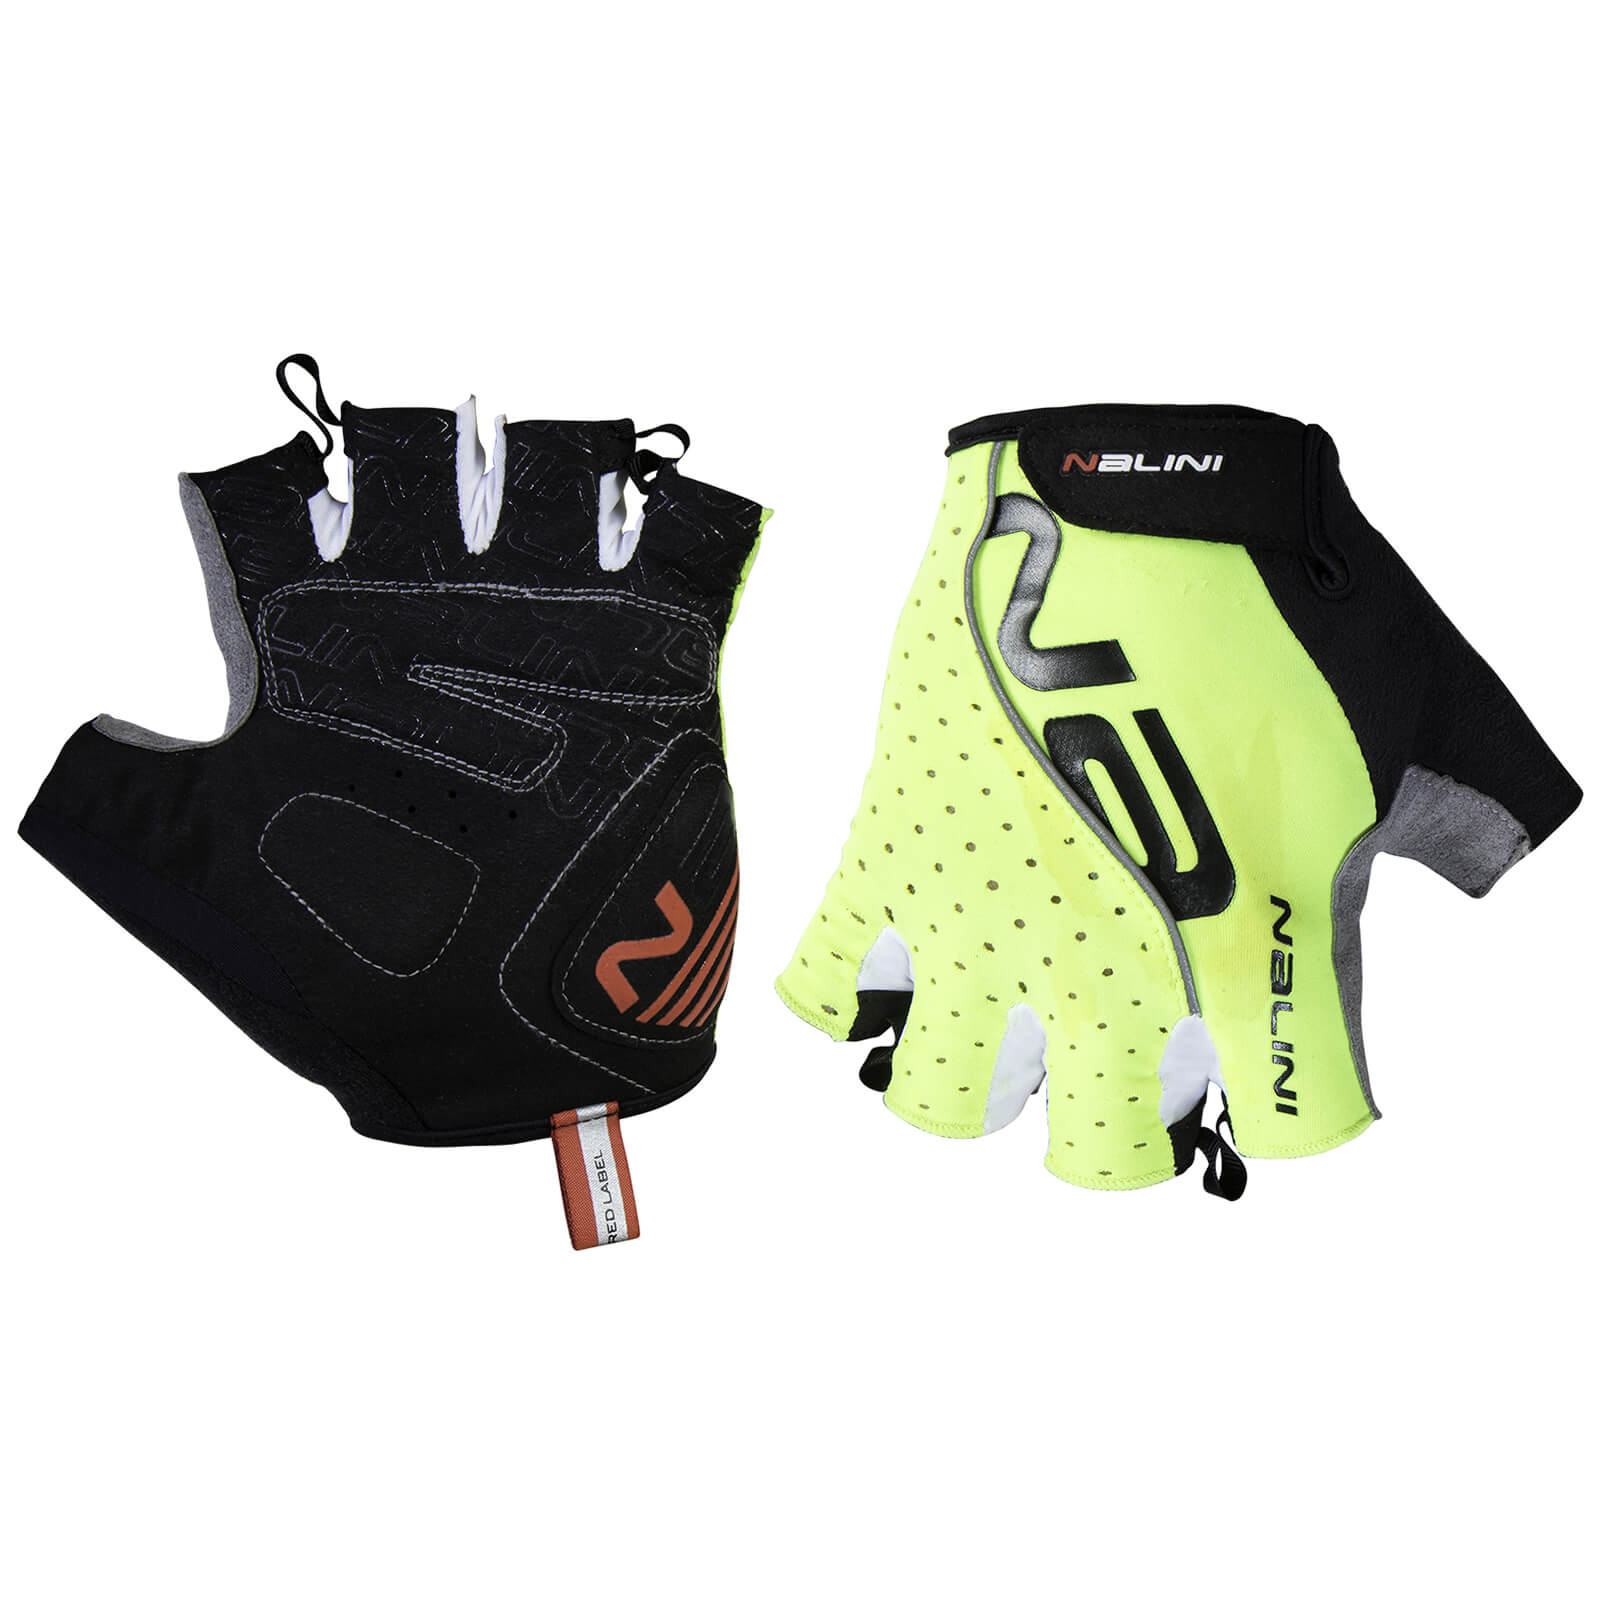 Nalini Red Mitts - Fluro Yellow